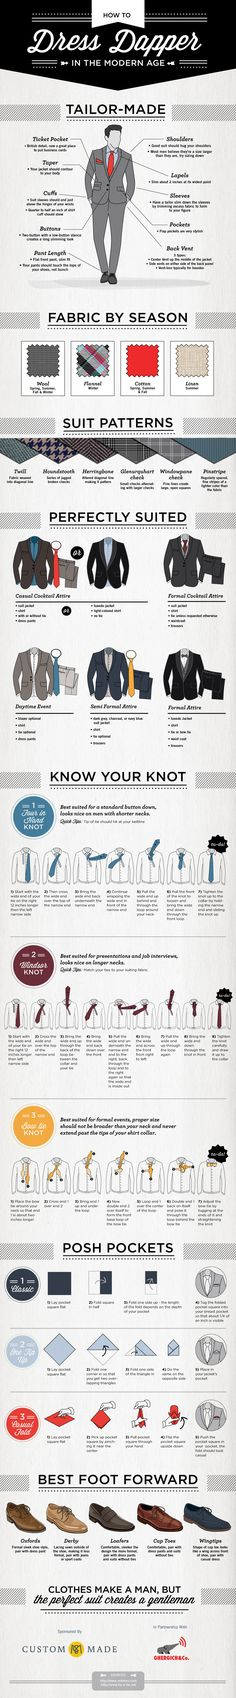 Men's Style: How to dress dapper in the modern age Infographic by CustomMade #infografía